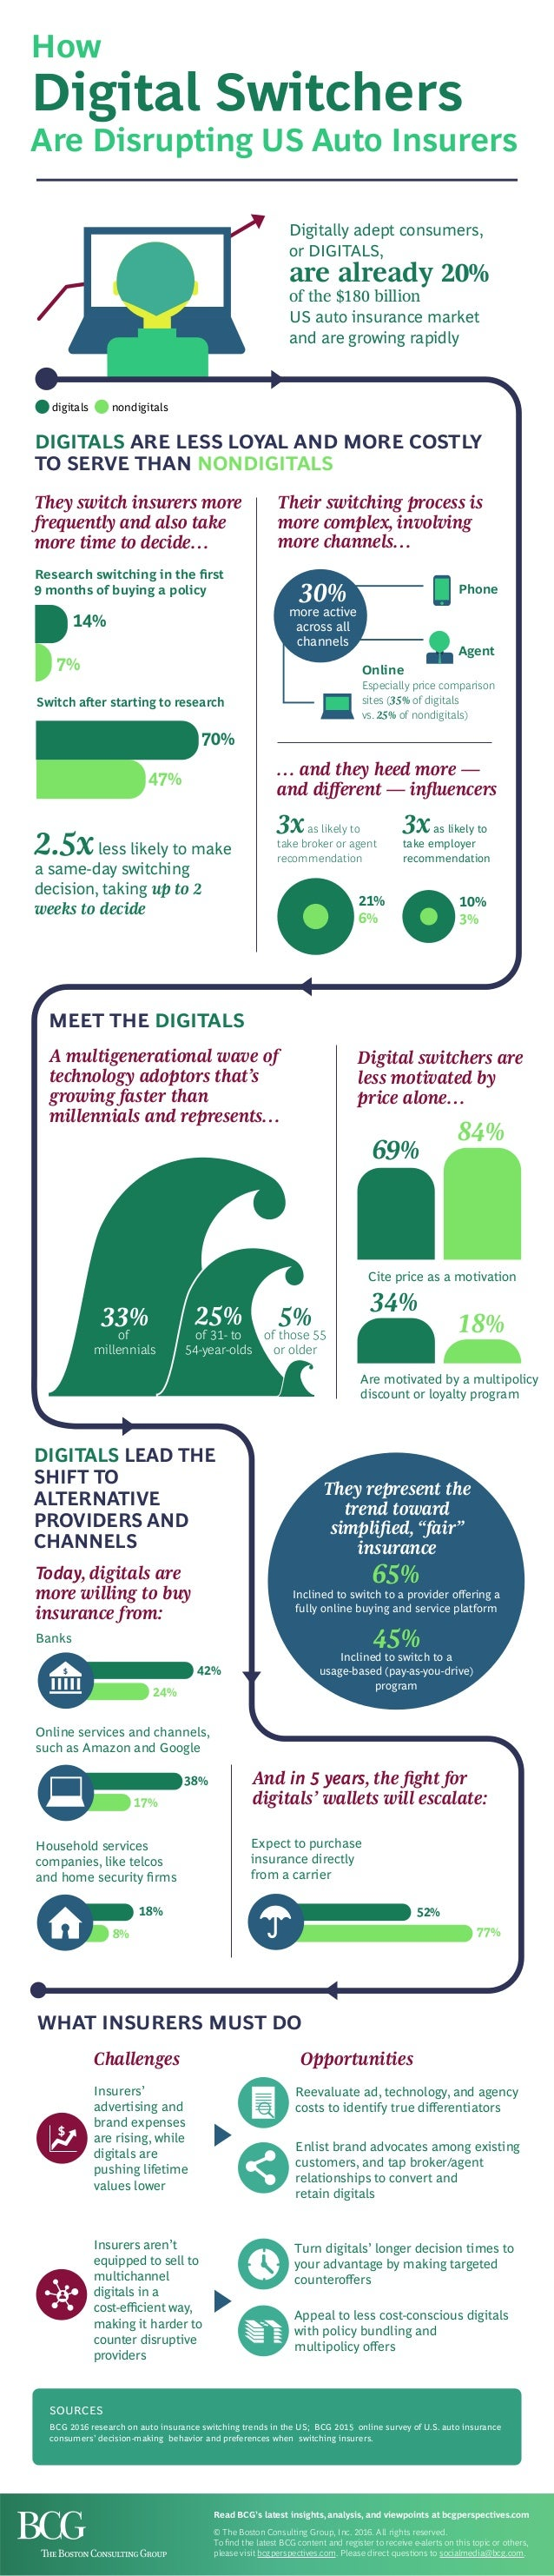 Digital switchers are less motivated by price alone… 69% 84% 34% 18% Cite price as a motivation Are motivated by a multipo...